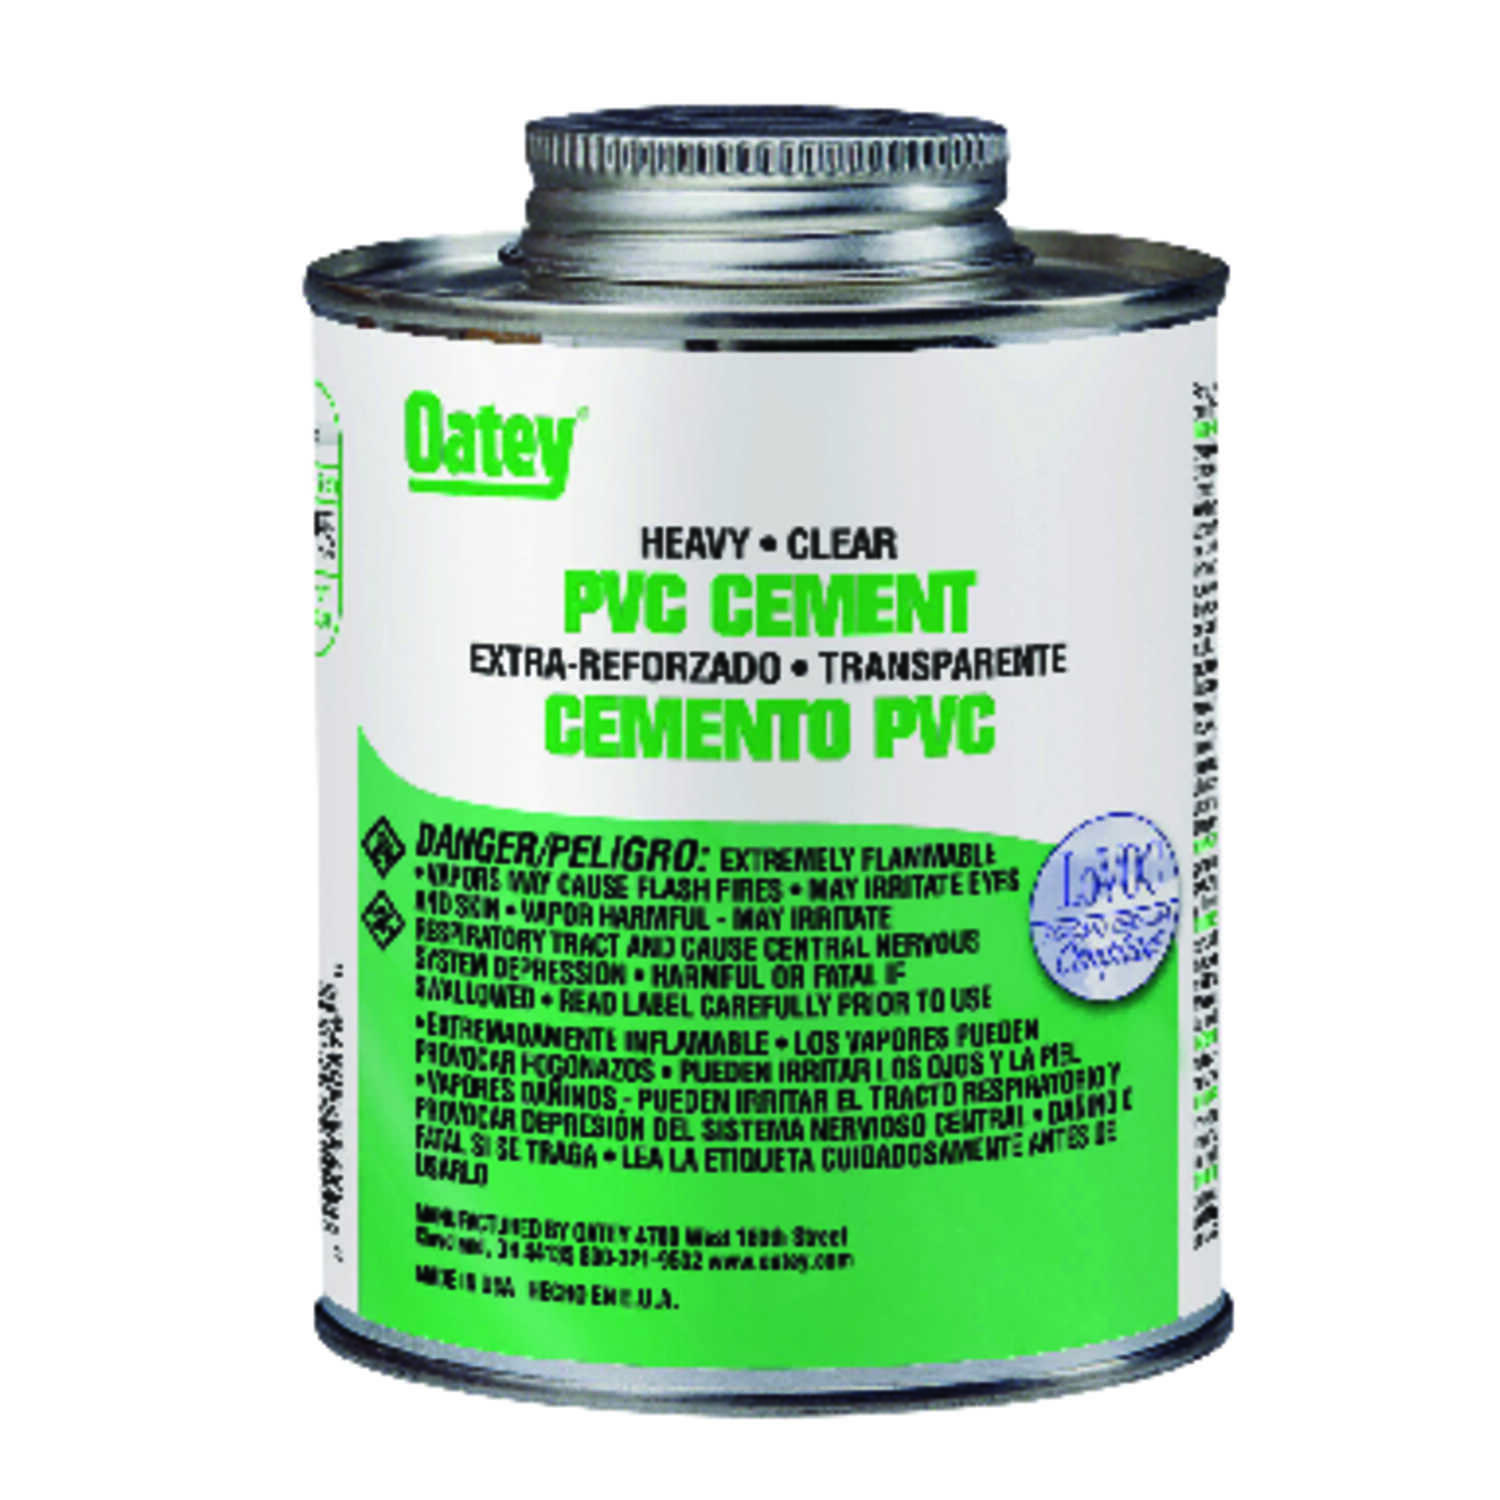 Oatey  Heavy Duty  Clear  For PVC 4 oz. Cement